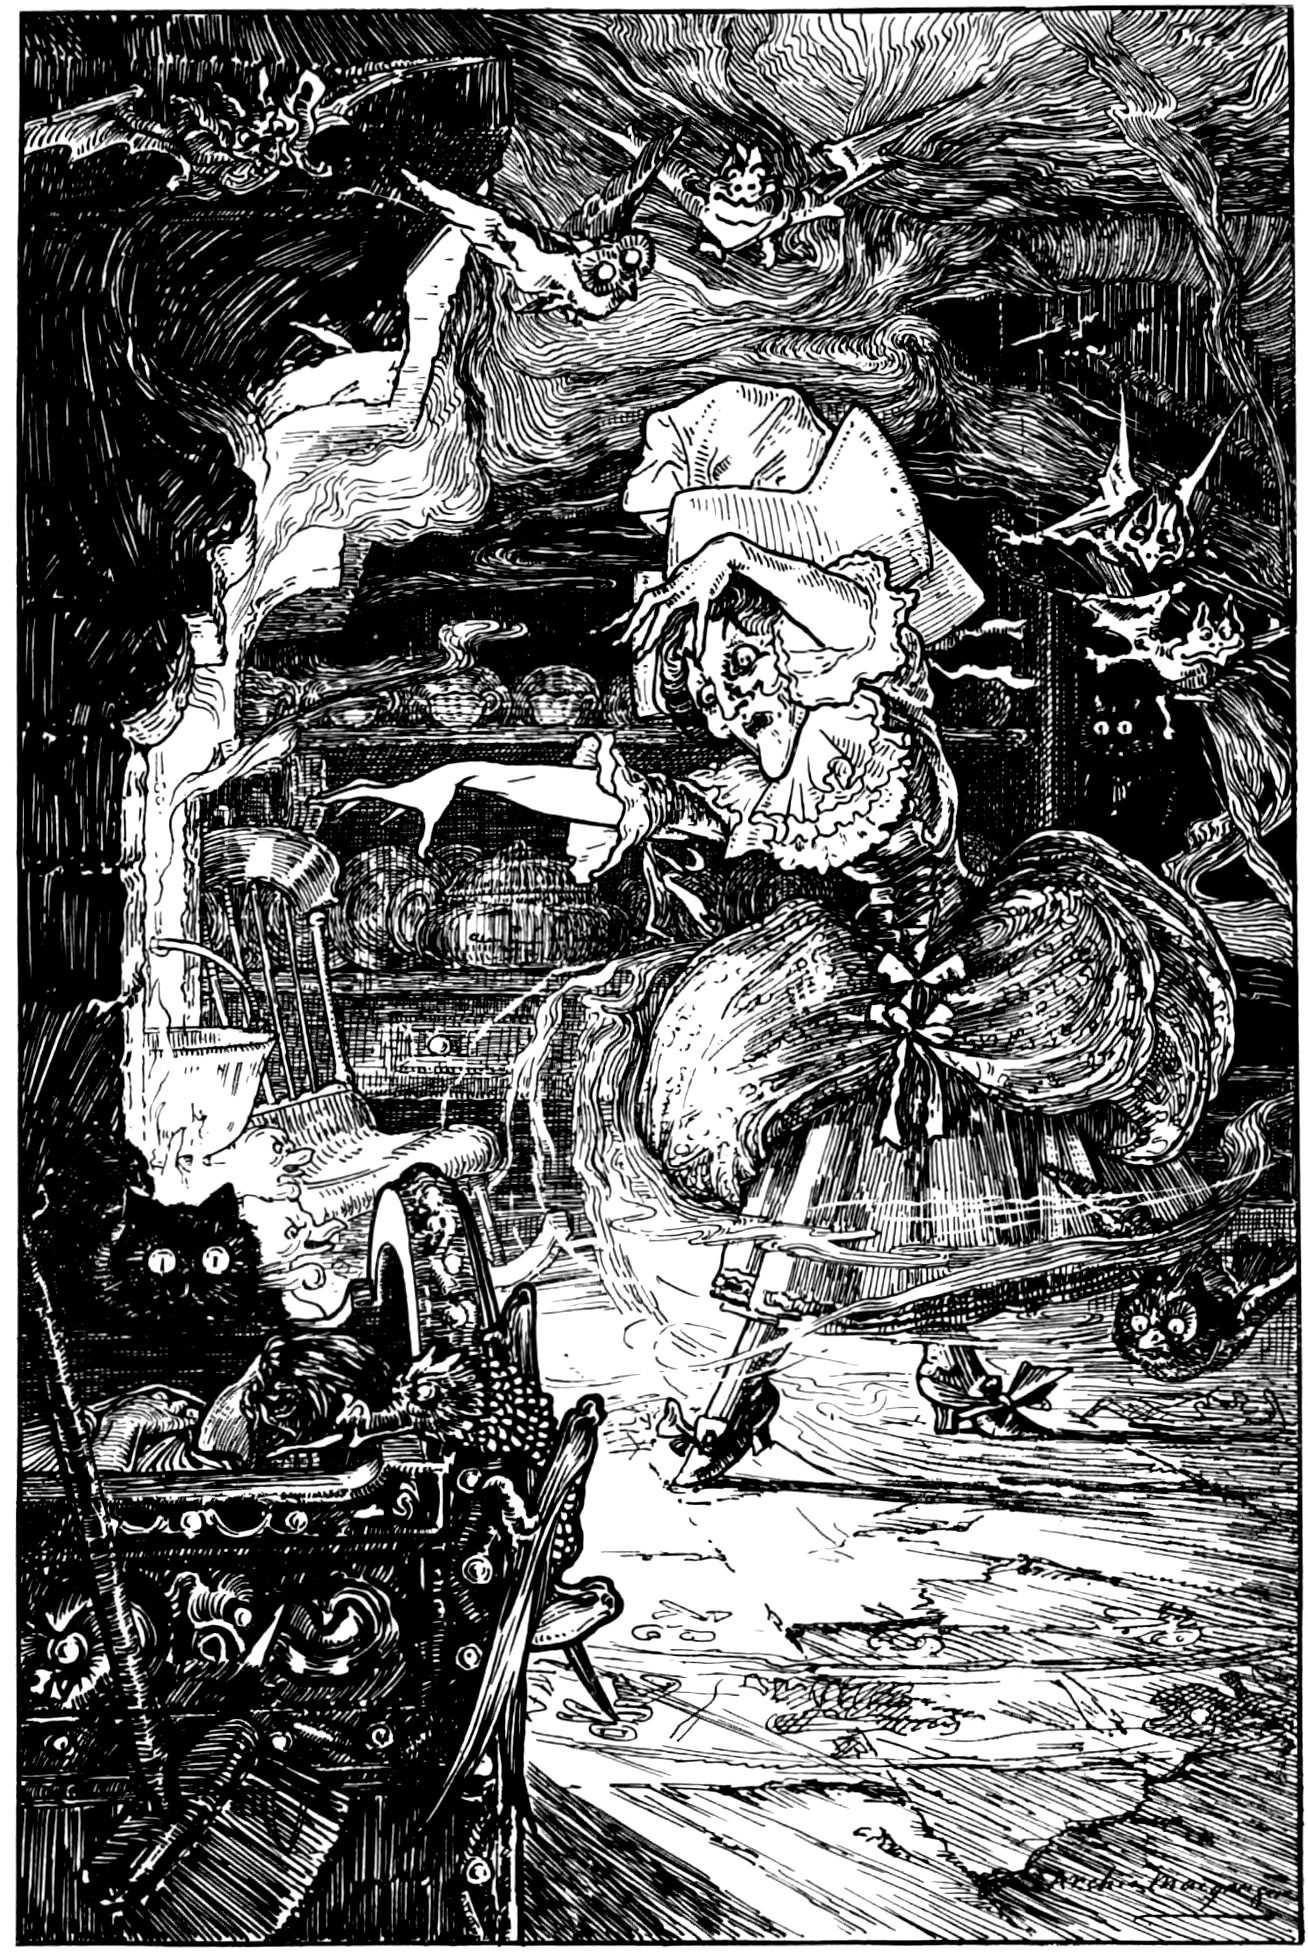 Archie MacGregor - Illustration from page255 of Butterscotia or A Cheap Trip to Fairyland by Sir Edward Abbott Parry, 1896